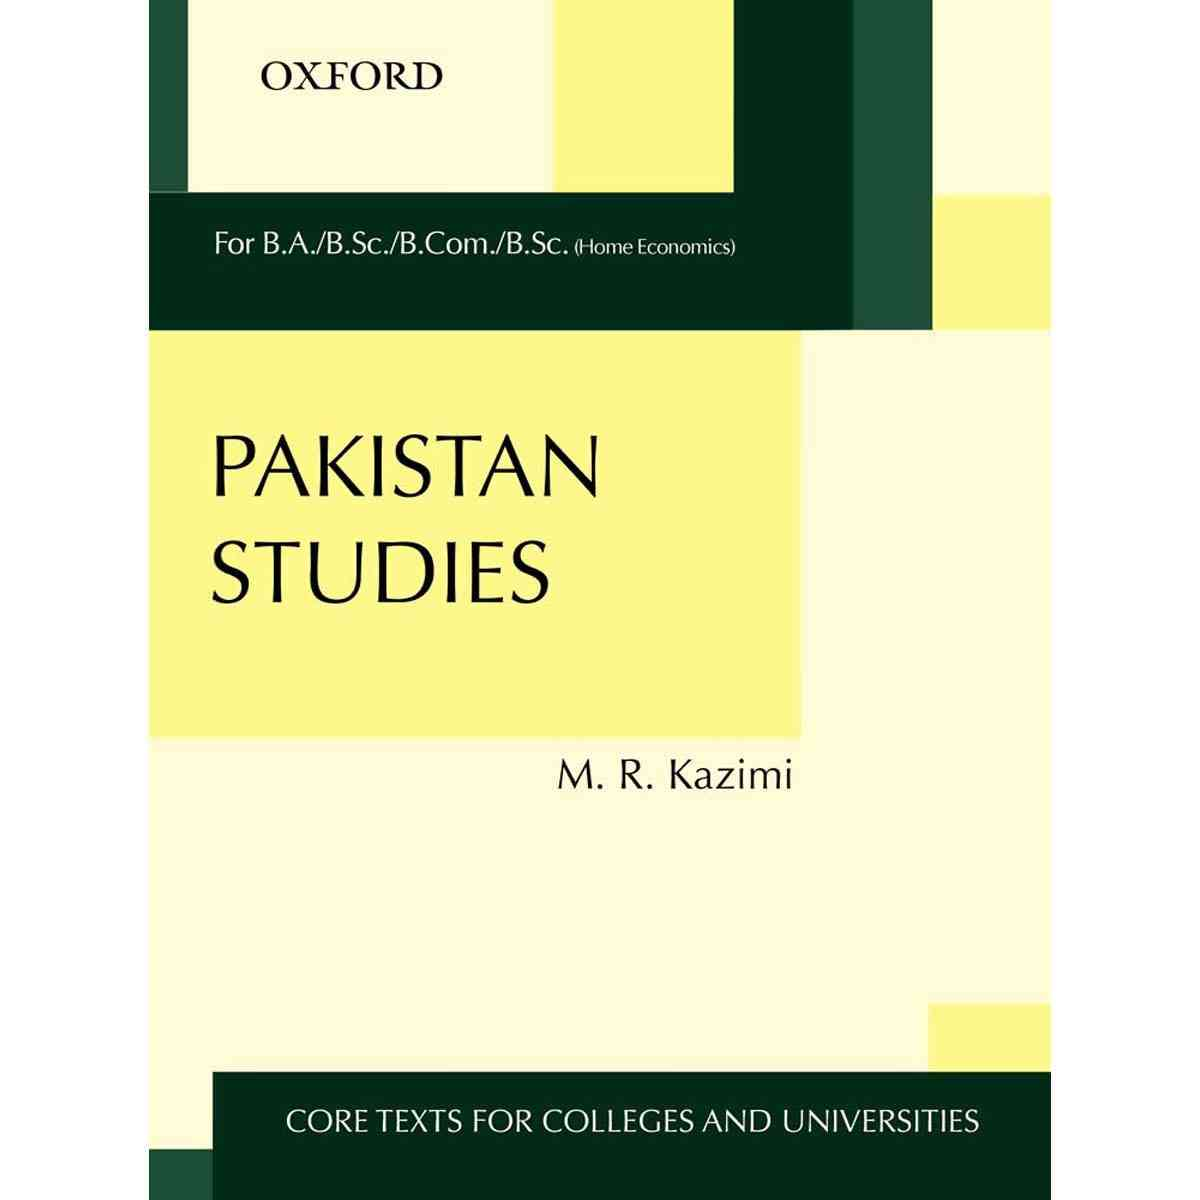 Oxford Books Pakistan Studies By Muhammad Reza Kazimi